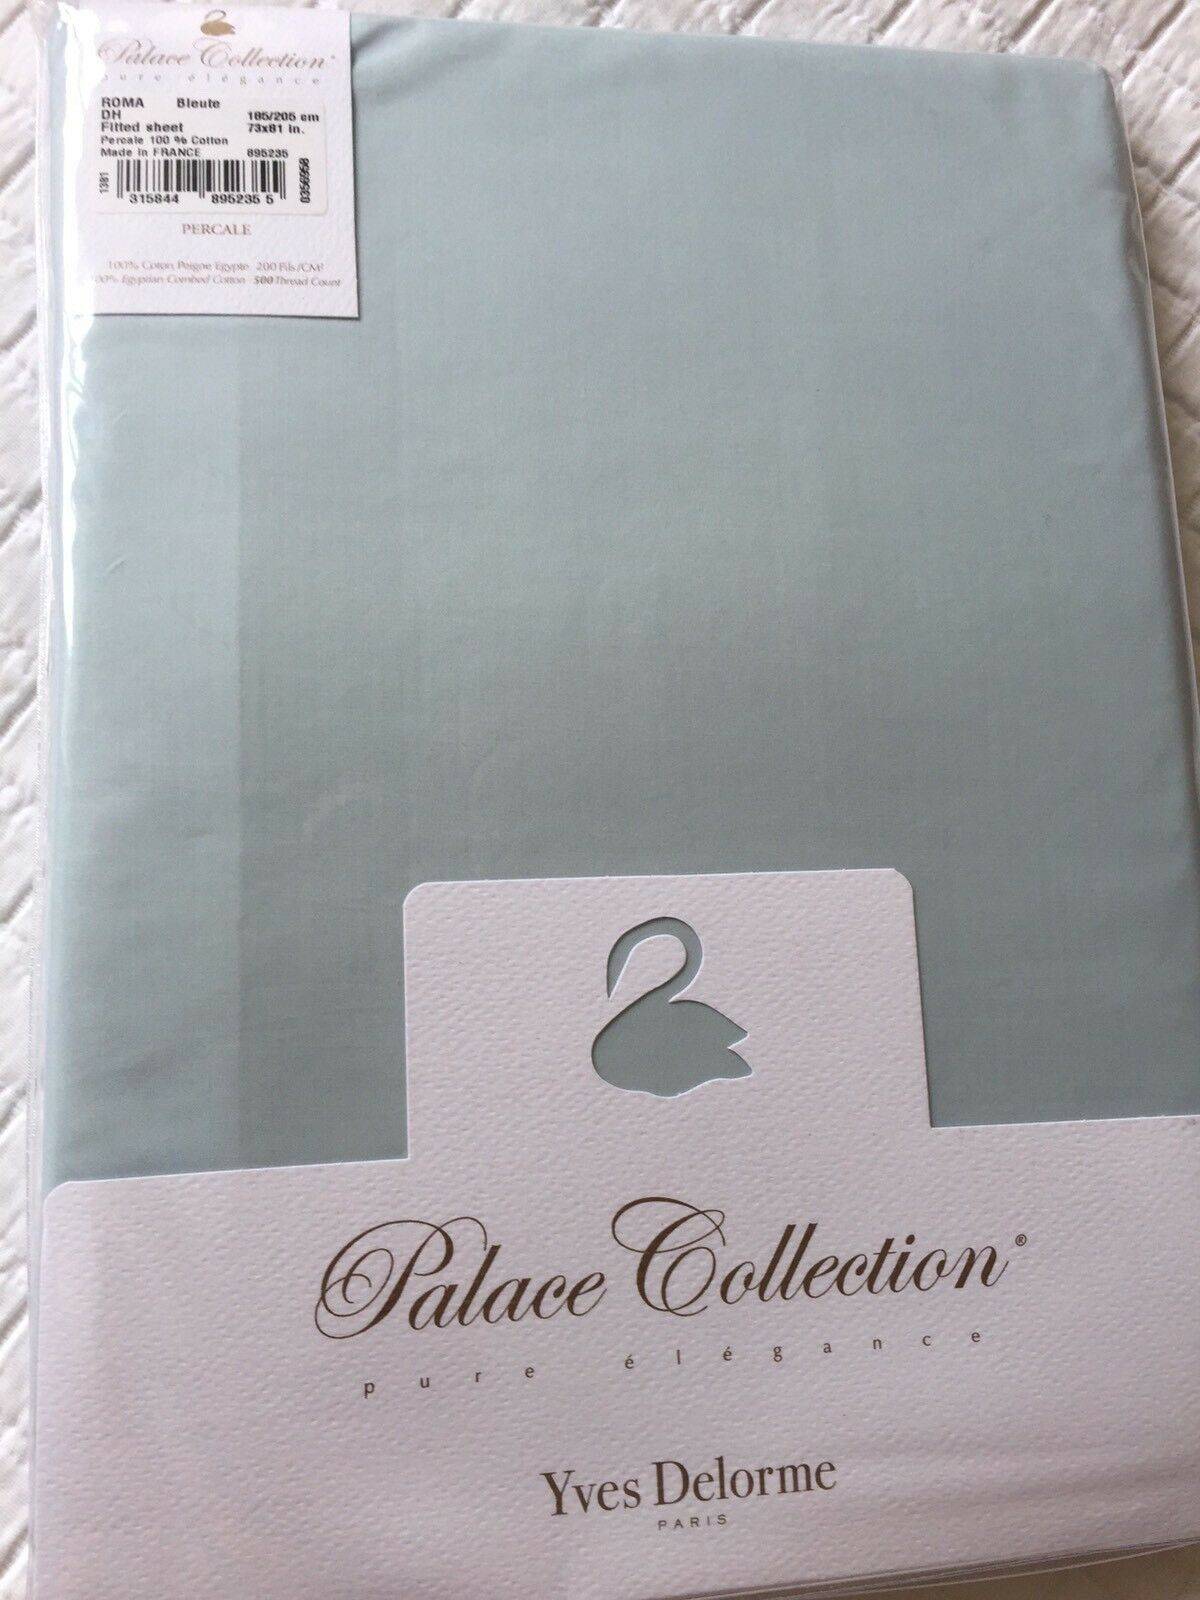 Yves Delorme ROMA BlauTE FITTED SHEET PALACE COLLECTION SUPERKING LUXURY